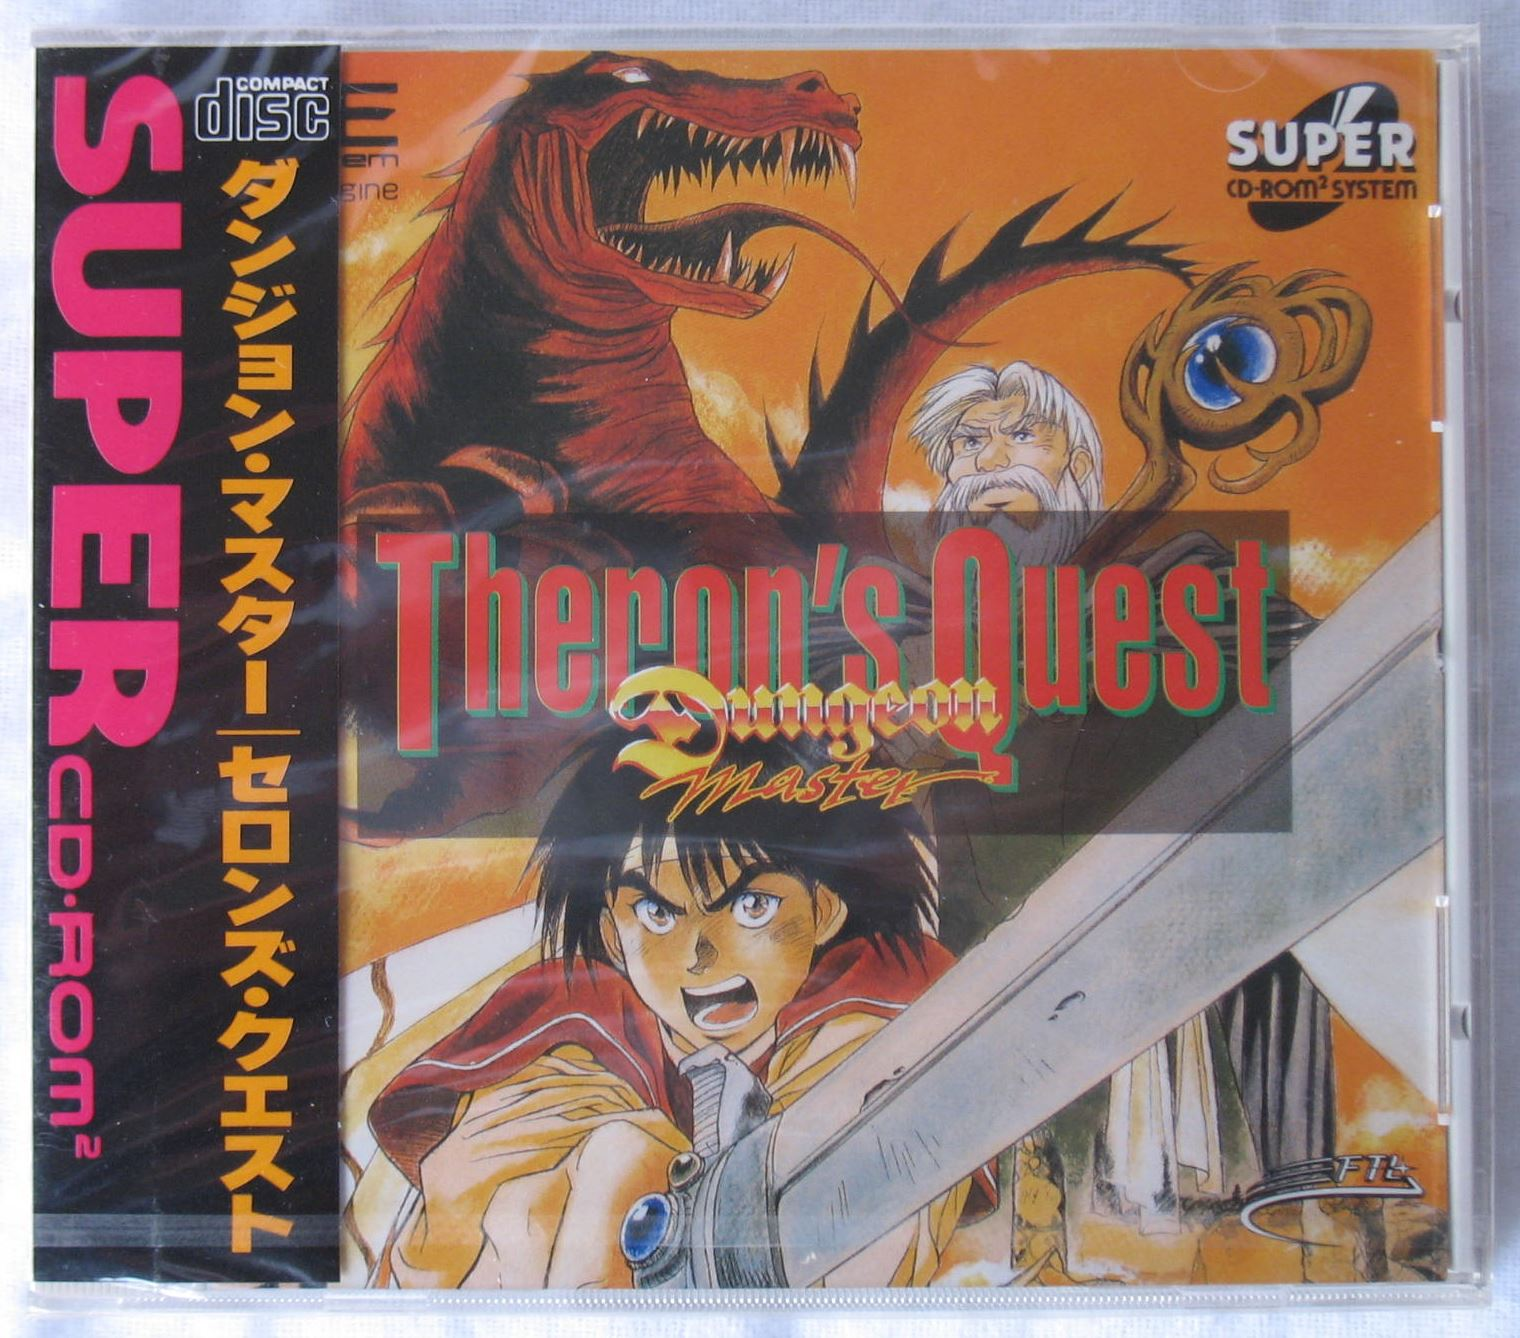 Game - Therons Quest - JP - PC Engine - Box - Front - Photo